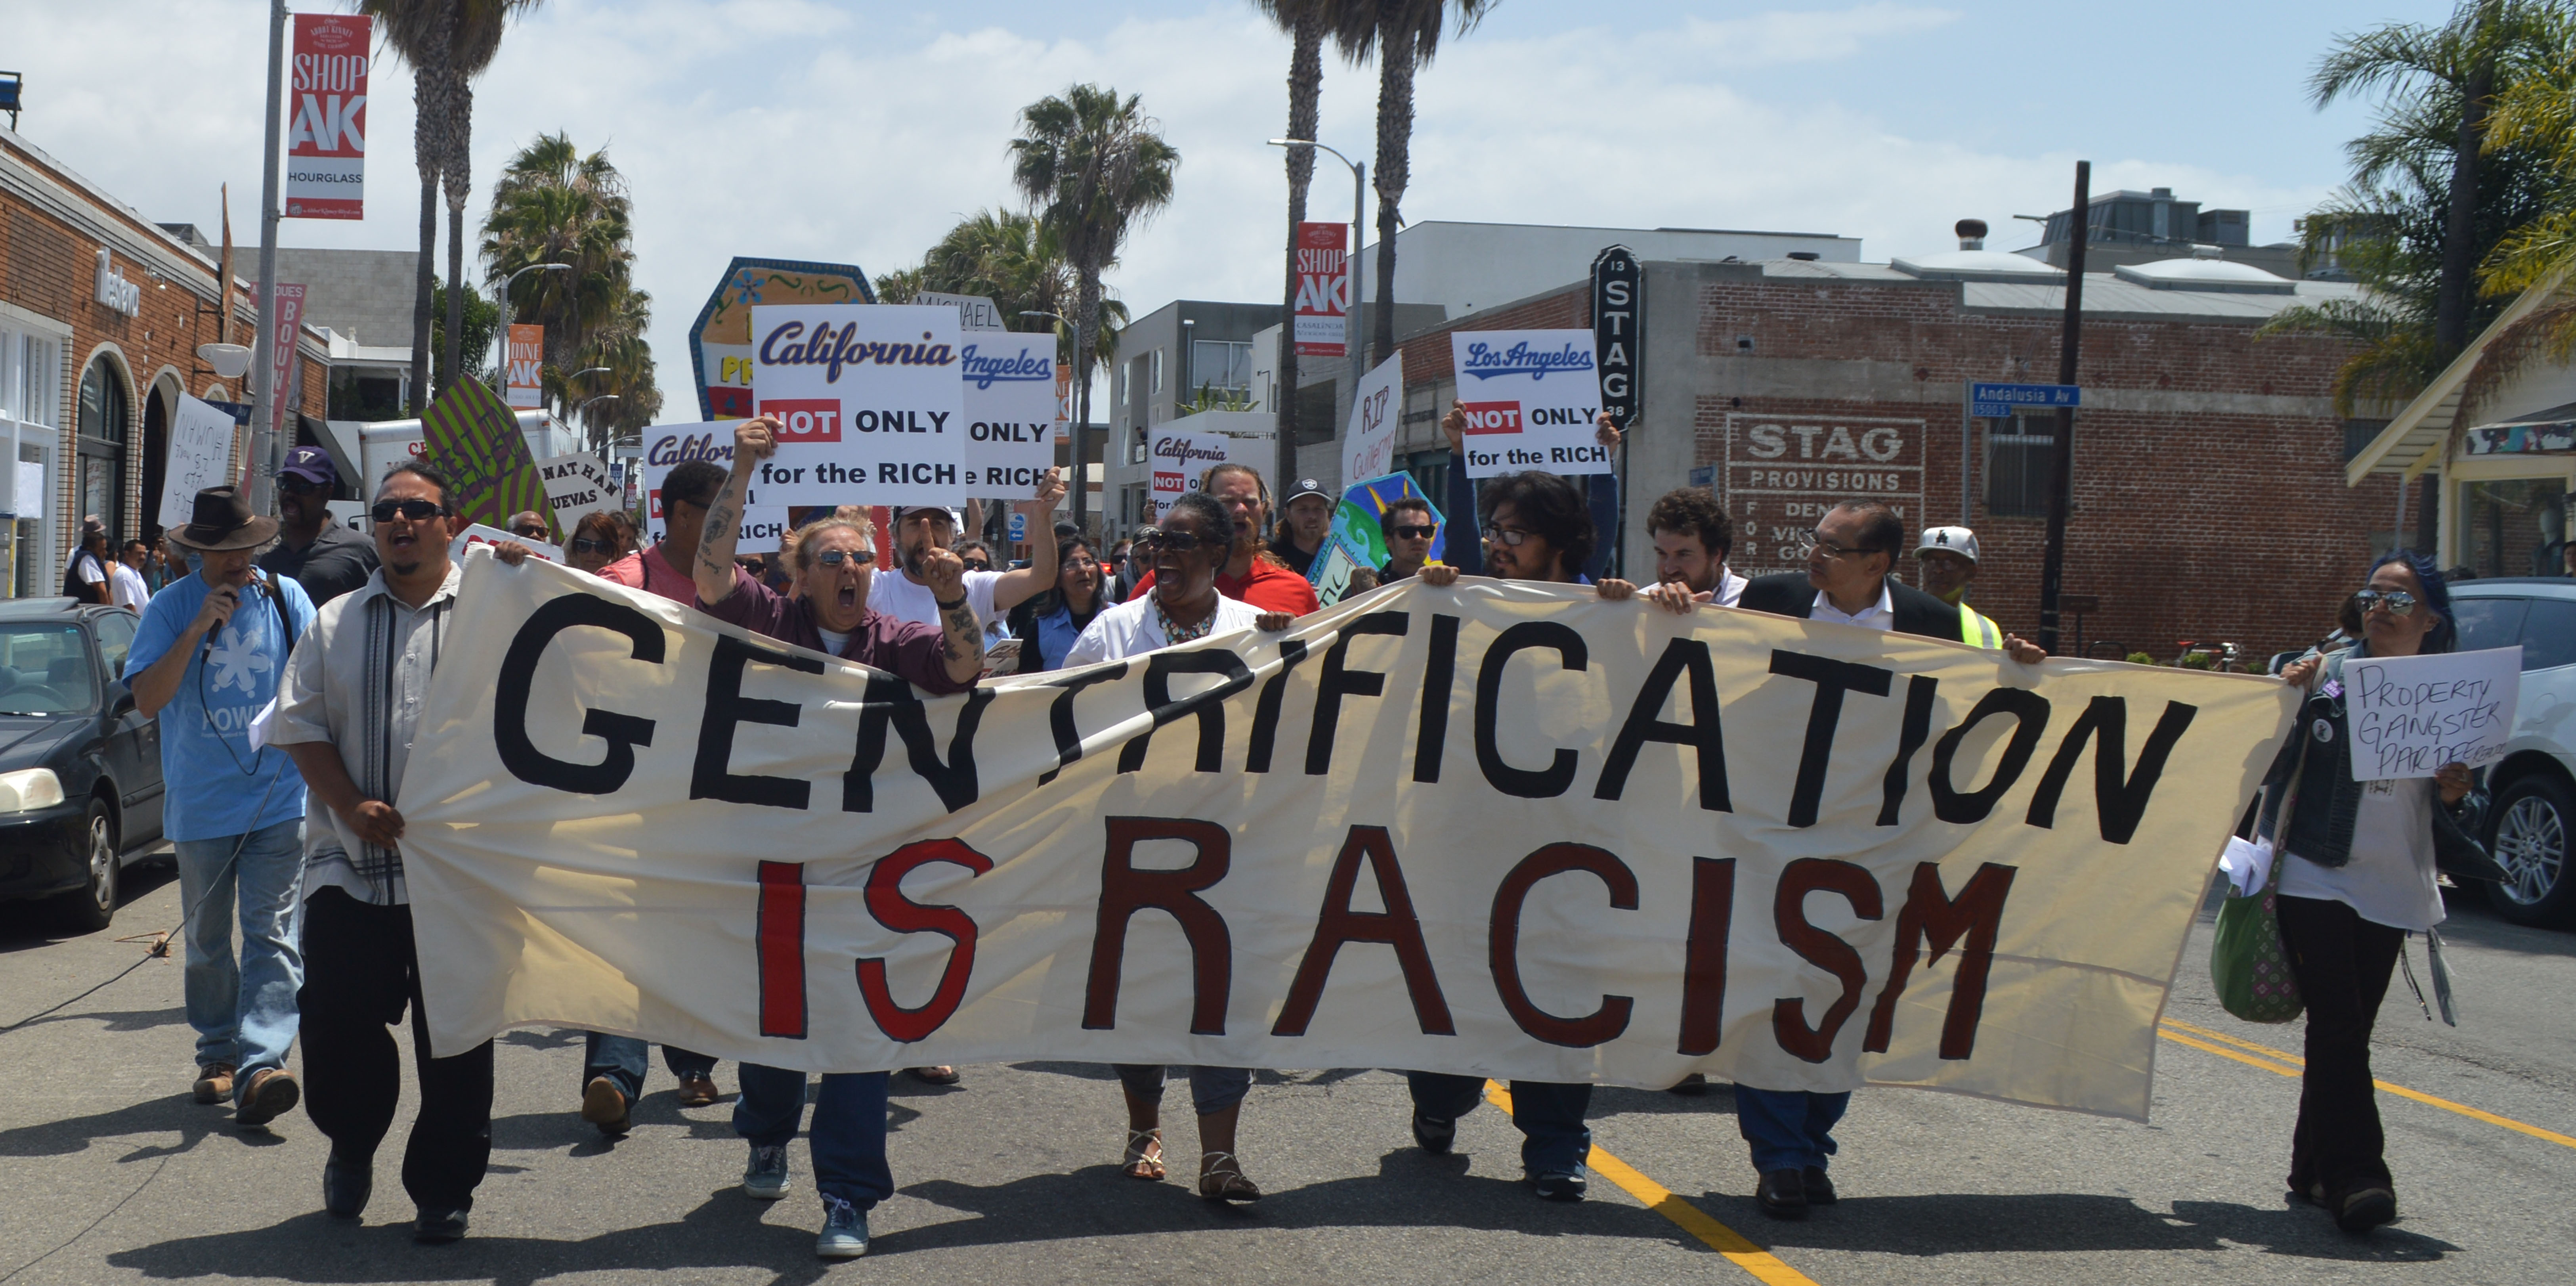 Protesters Marching On Abbot Kinney Boulevard